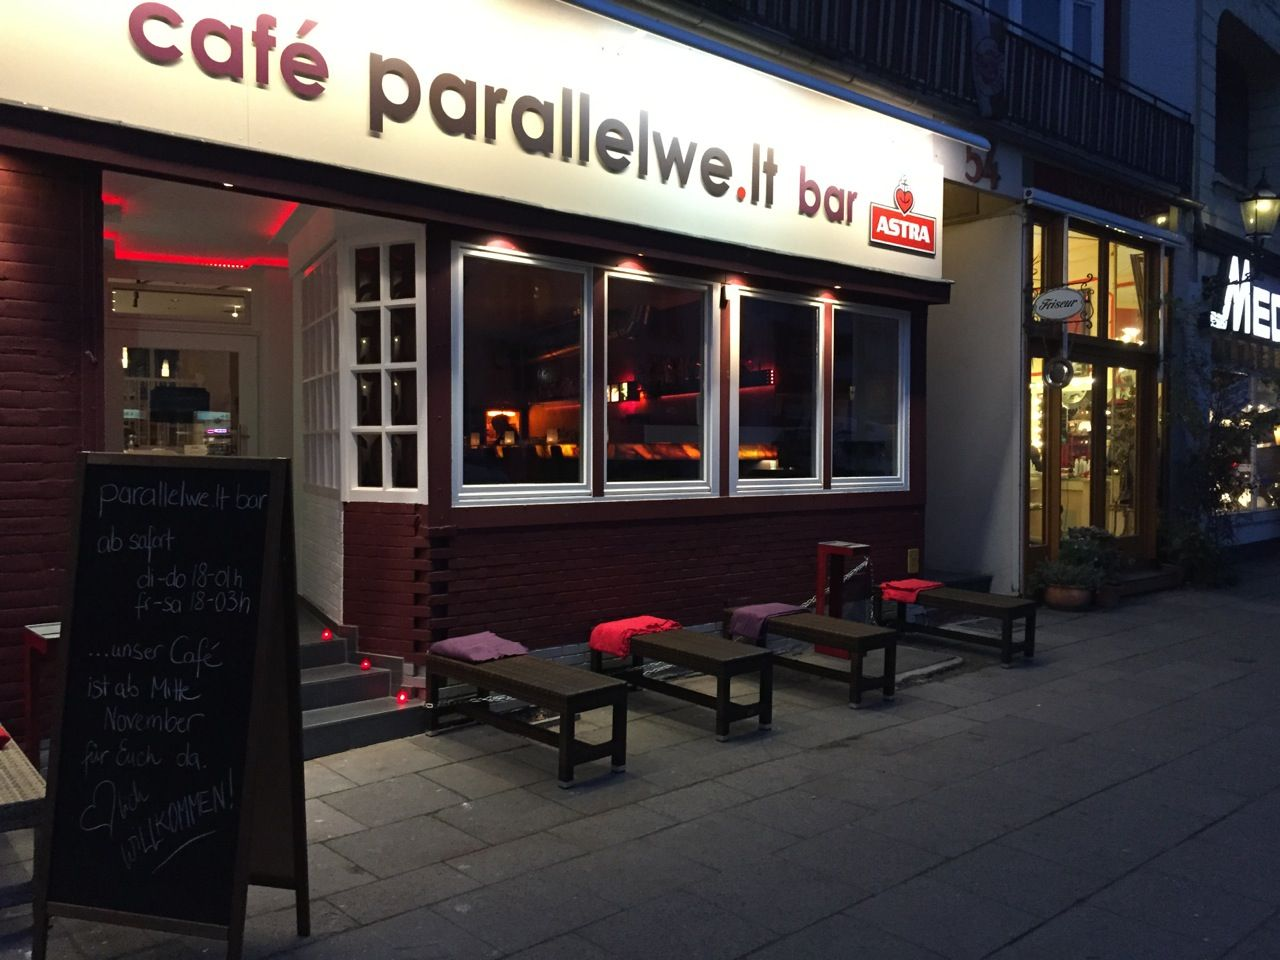 Cafe Parallelwe.lt Bar Hamburg